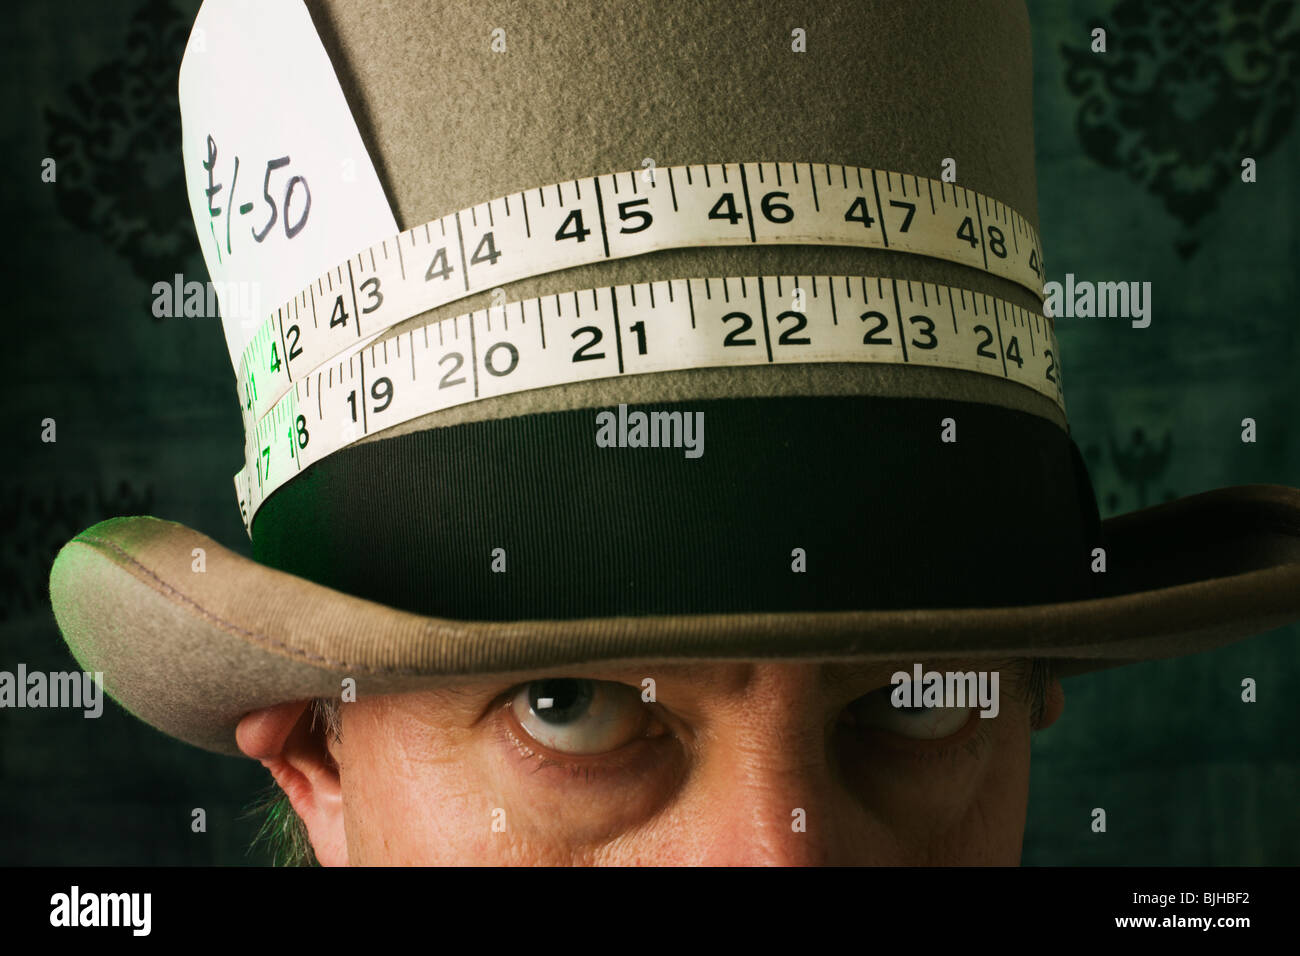 A 'mad hatter' with tape measure around his hat. - Stock Image